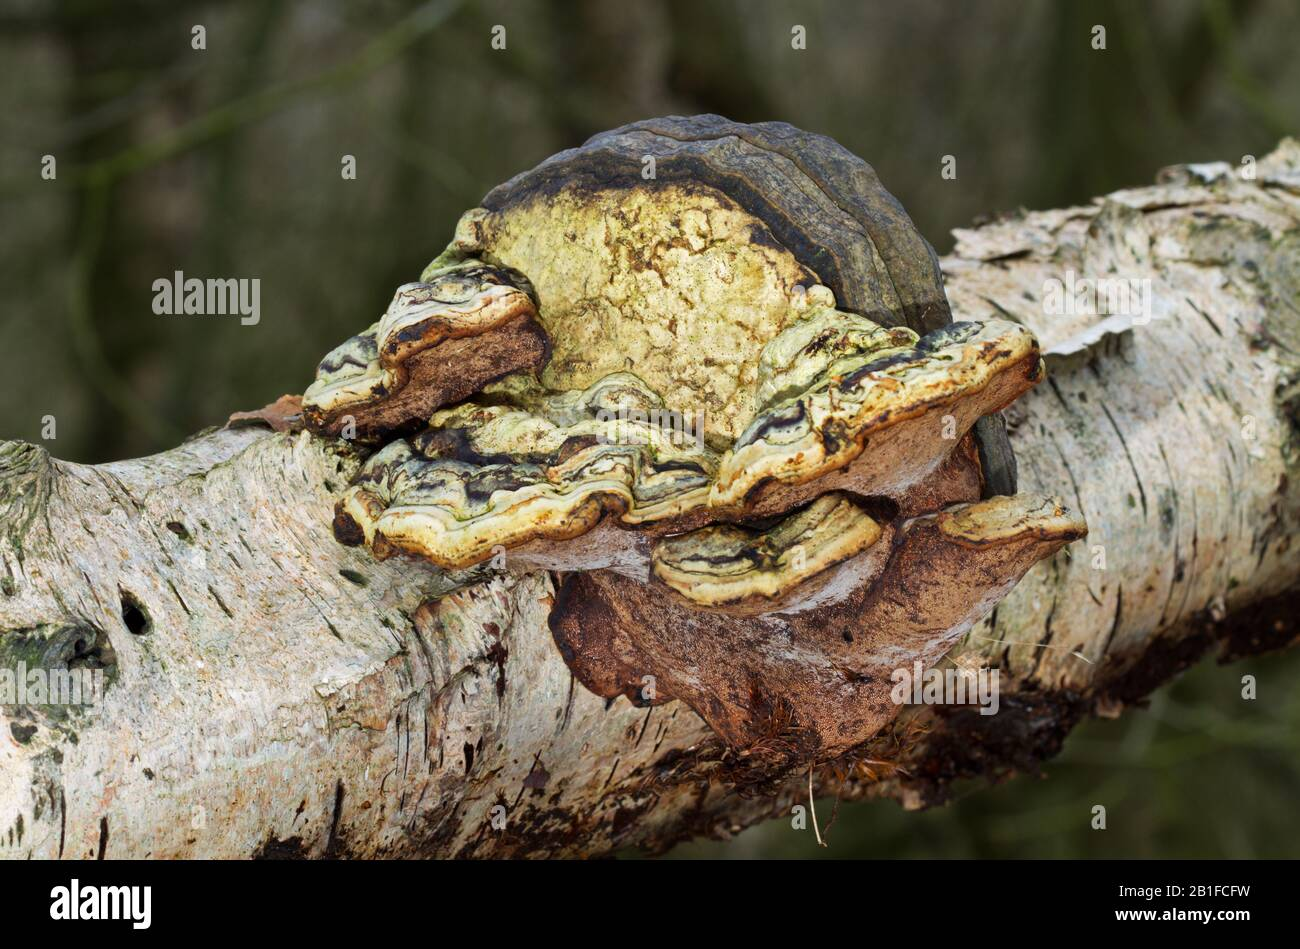 Strangely deformed Beeswax bracket fungus growing on the rotting stem of a Birch tree Stock Photo